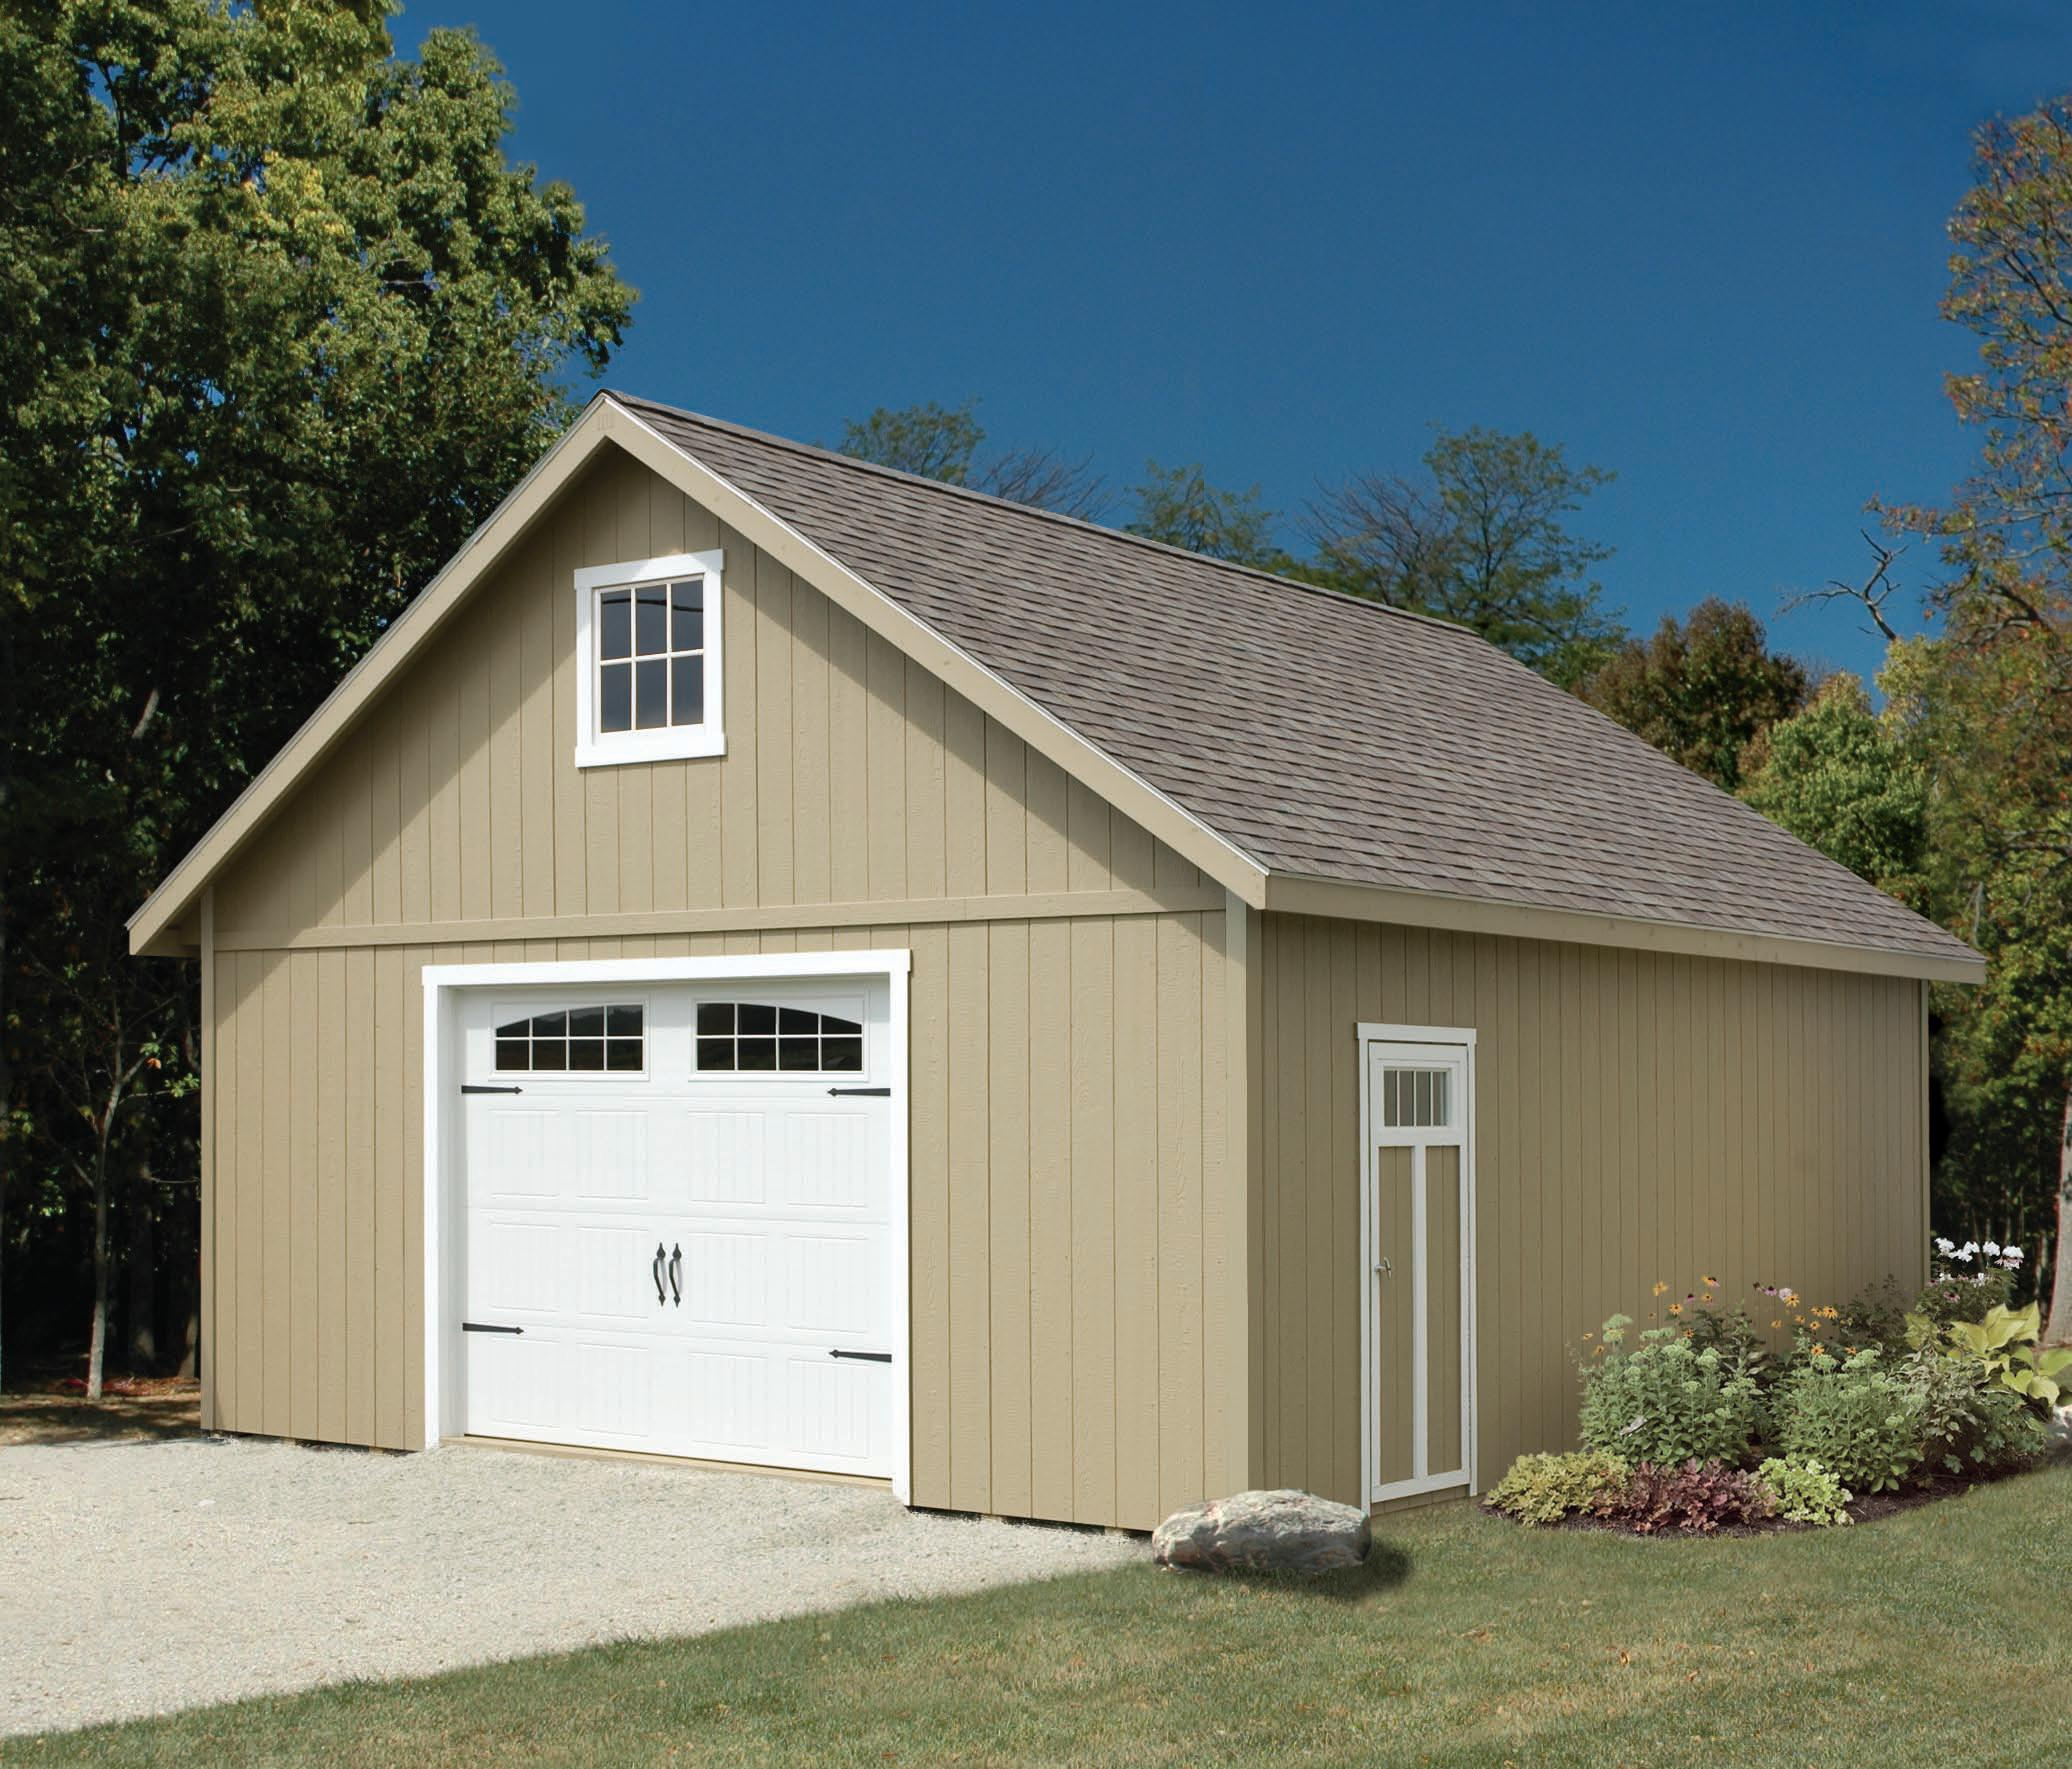 24x36 2 Car 2 Story Garage: Custom Built Garages Of All Sizes Amish Built